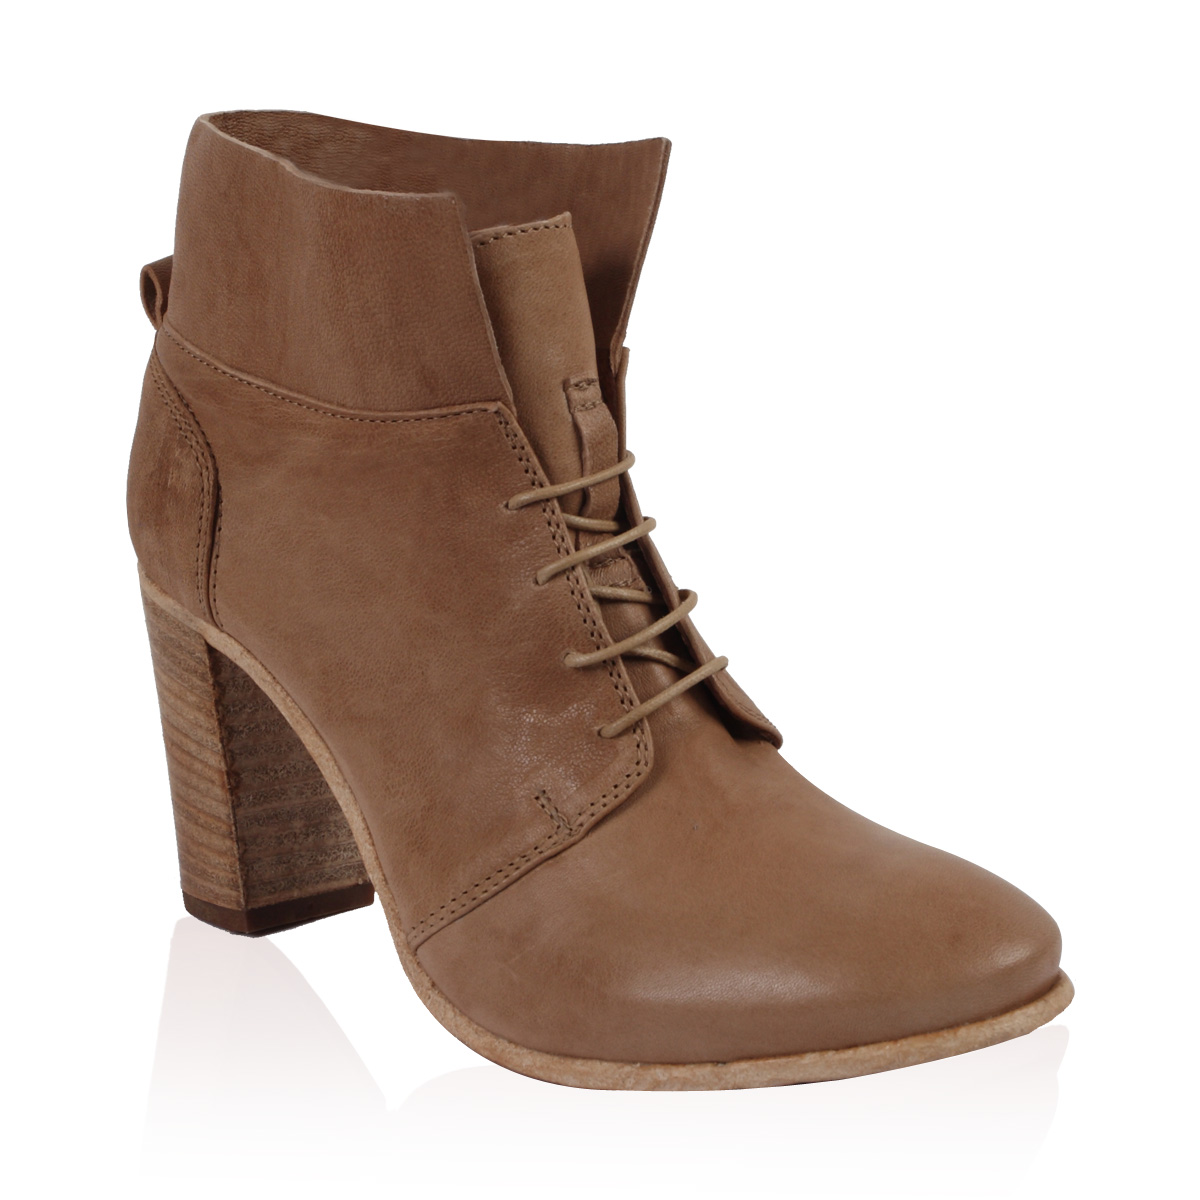 NEW-PIED-A-TERRE-LADIES-PANNA-WOMENS-DARK-NUDE-BLOCK-HEEL-ANKLE-BOOTS-SIZE-3-8